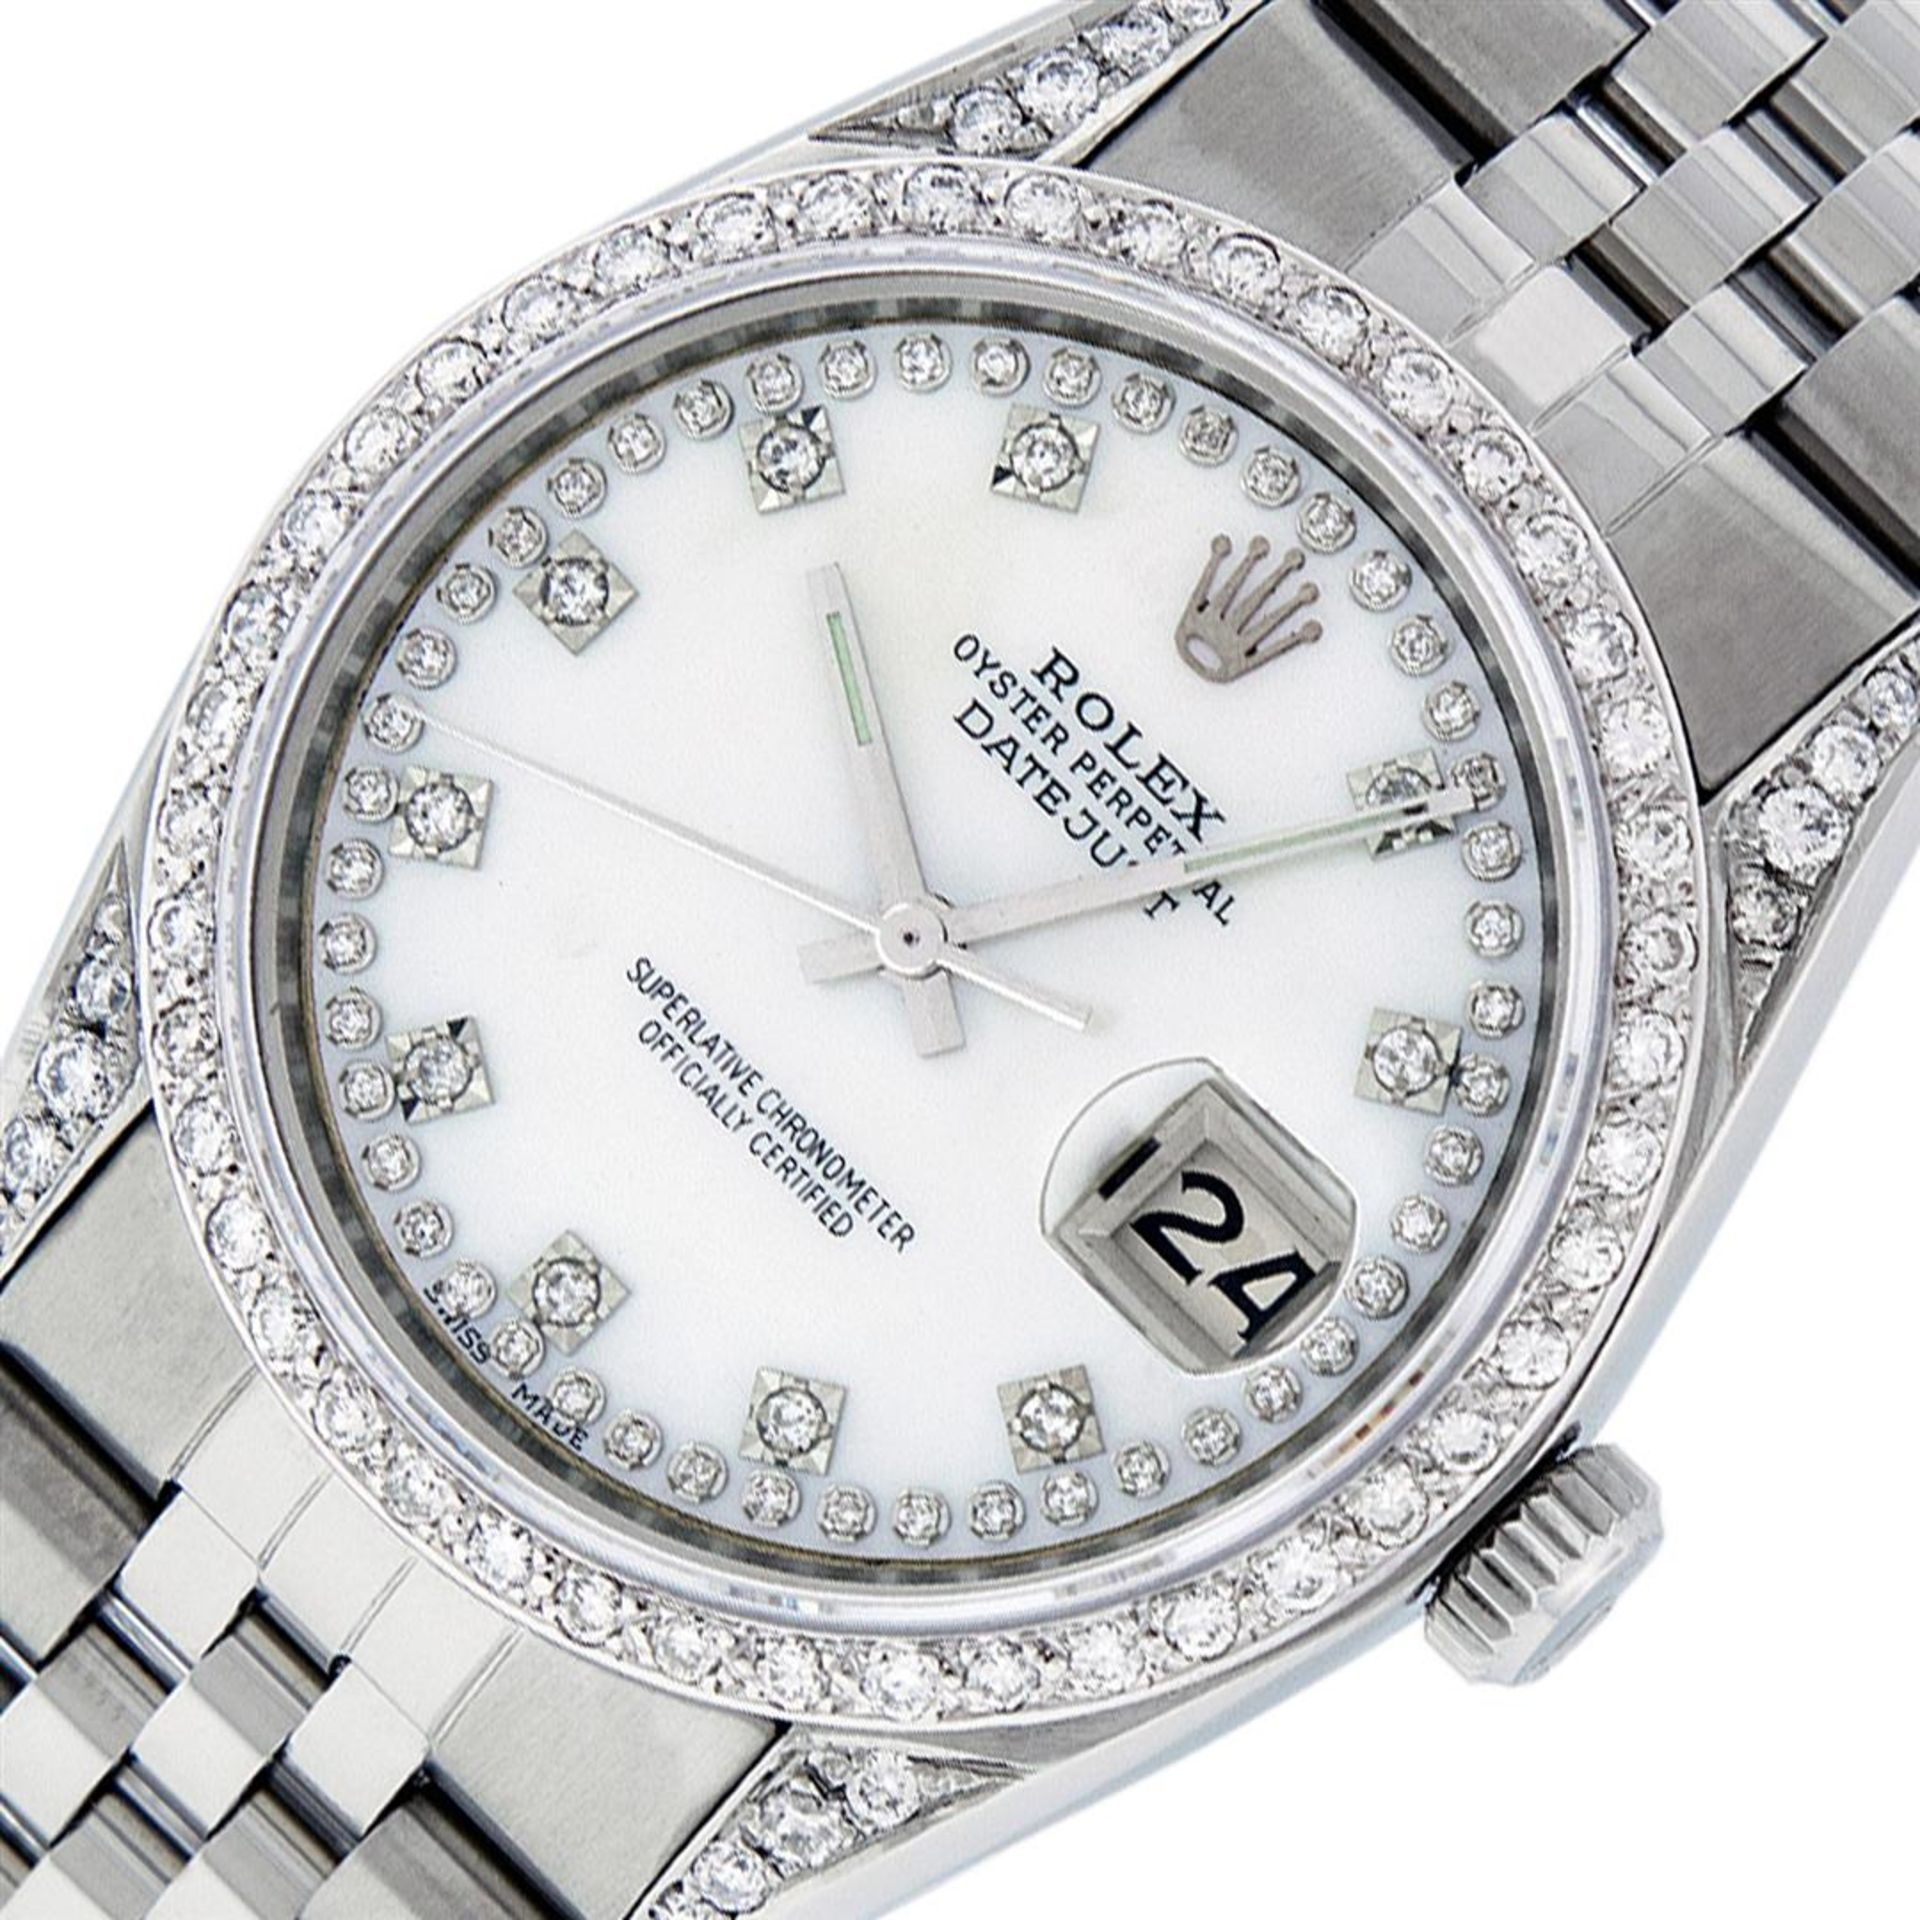 Rolex Mens Stainless Steel Mother Of Pearl Diamond Lugs Datejust Wristwatch - Image 2 of 9